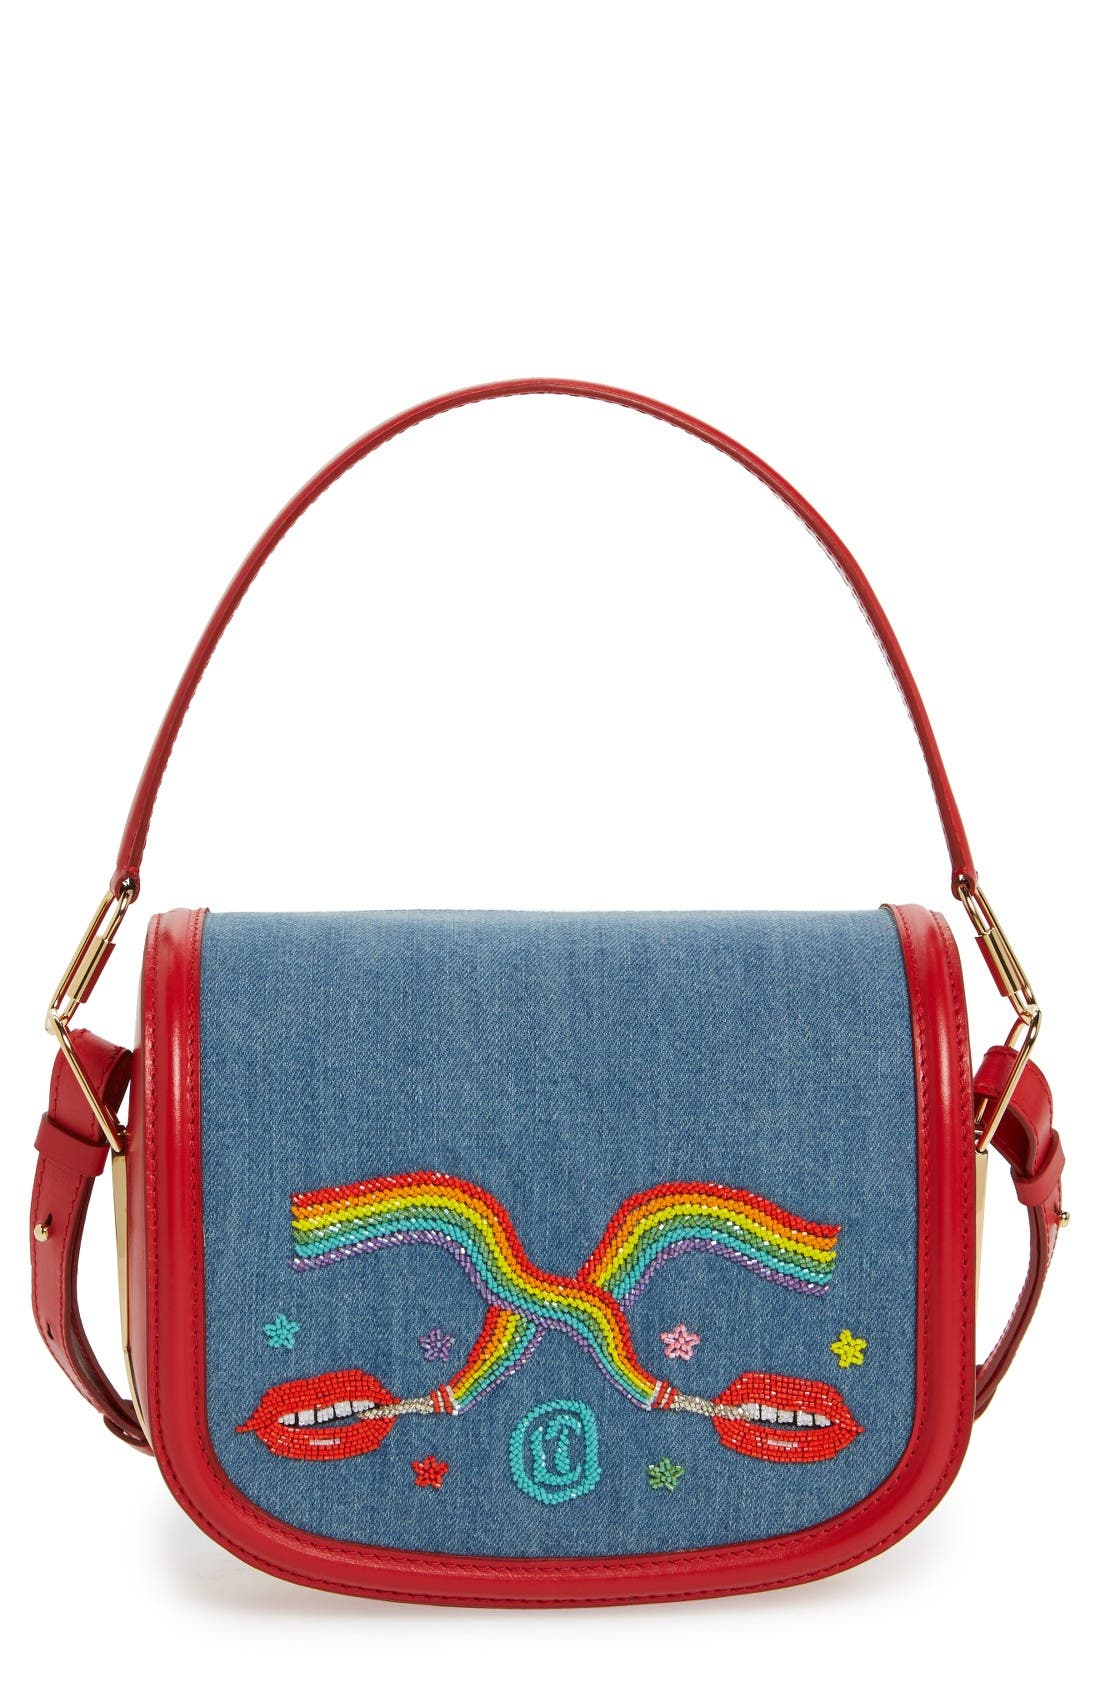 Olympia Le-Tan Dutchies Crossbody Bag